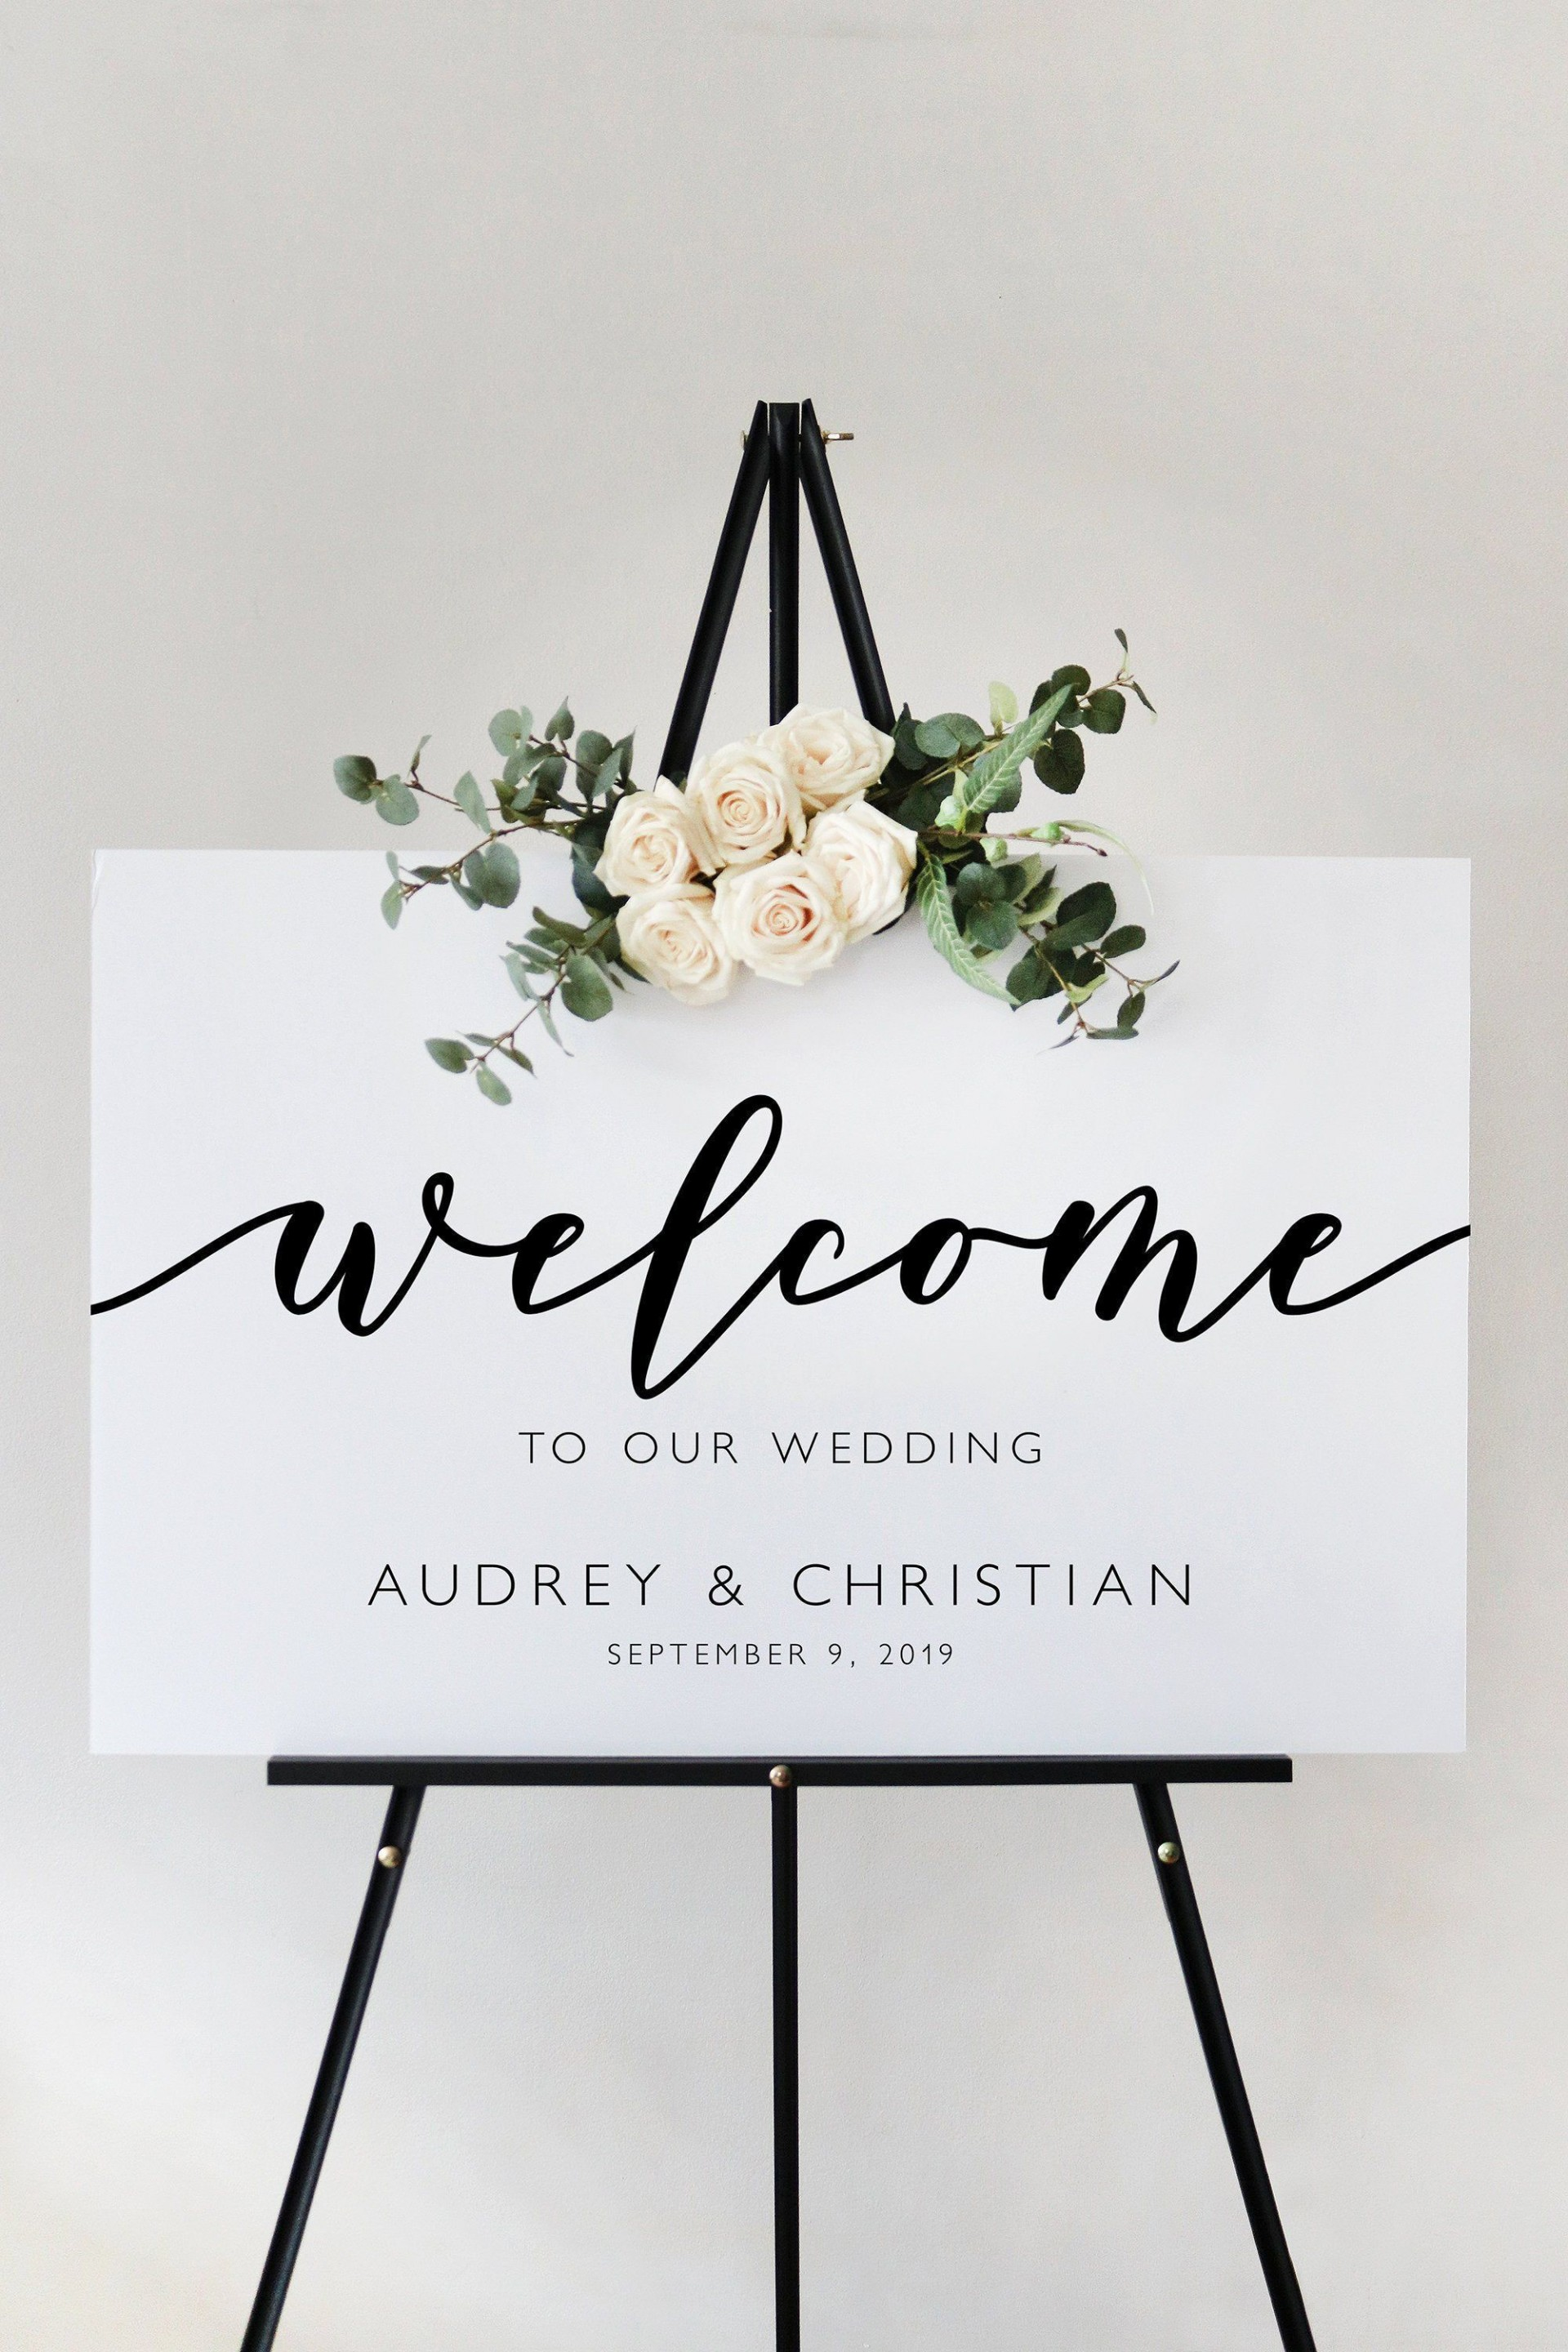 005 Formidable Wedding Welcome Sign Printable Template Concept  Free1920